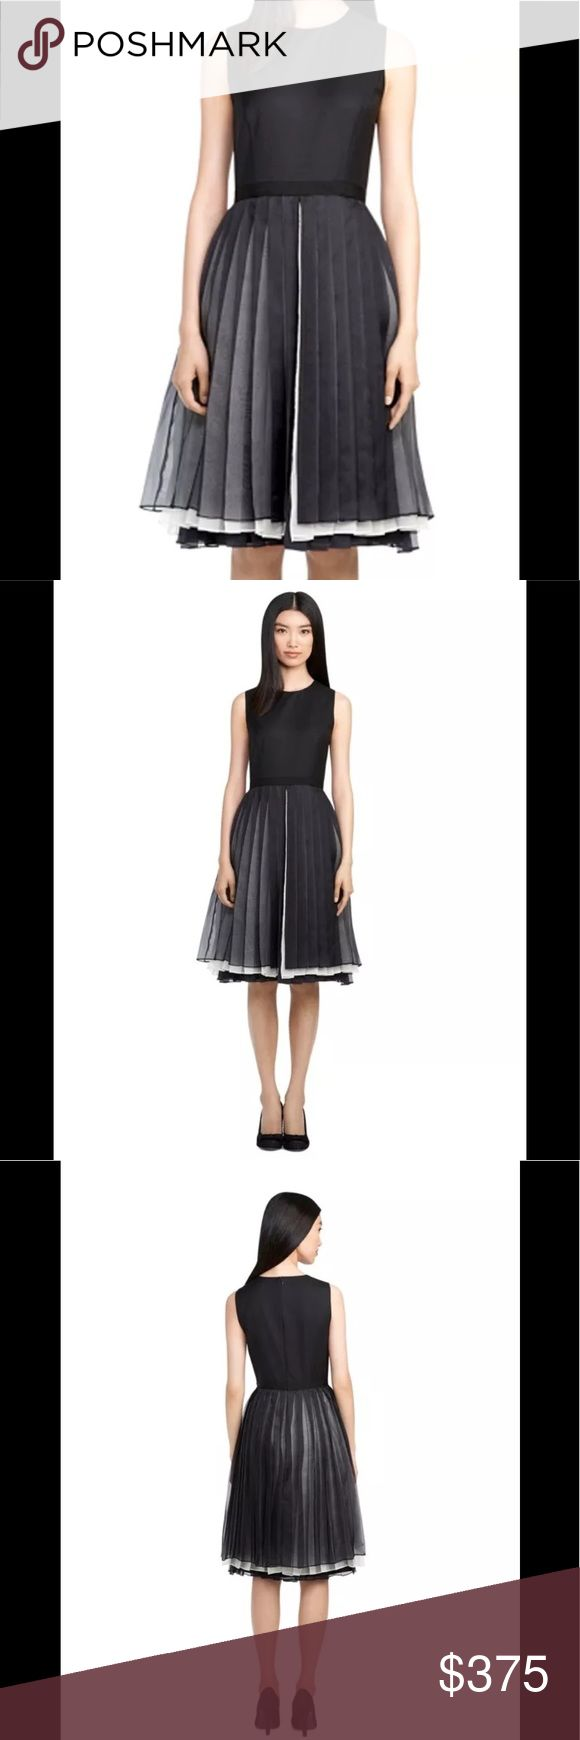 Brooks Brothers BF Cocktail Silk Dress NWT Medium Brooks Brothers Black Fleece Silk Dress Sz 6-8 Medium BB3 NWT 🌻Brand New Condition with tags. Black Fleece Cocktail dress by Thom Browne. Split front with contrasting layers of pleated silk, over straight wool shift. Body: 100% Wool, Skirt layers: 100% Silk, full Bemberg lining. Black grosgrain at waistband on top layer. Hidden center back zipper. Stunning! Dry clean. Imported. Item# AX00156 originally $1750 » I only sell new items! Brooks…